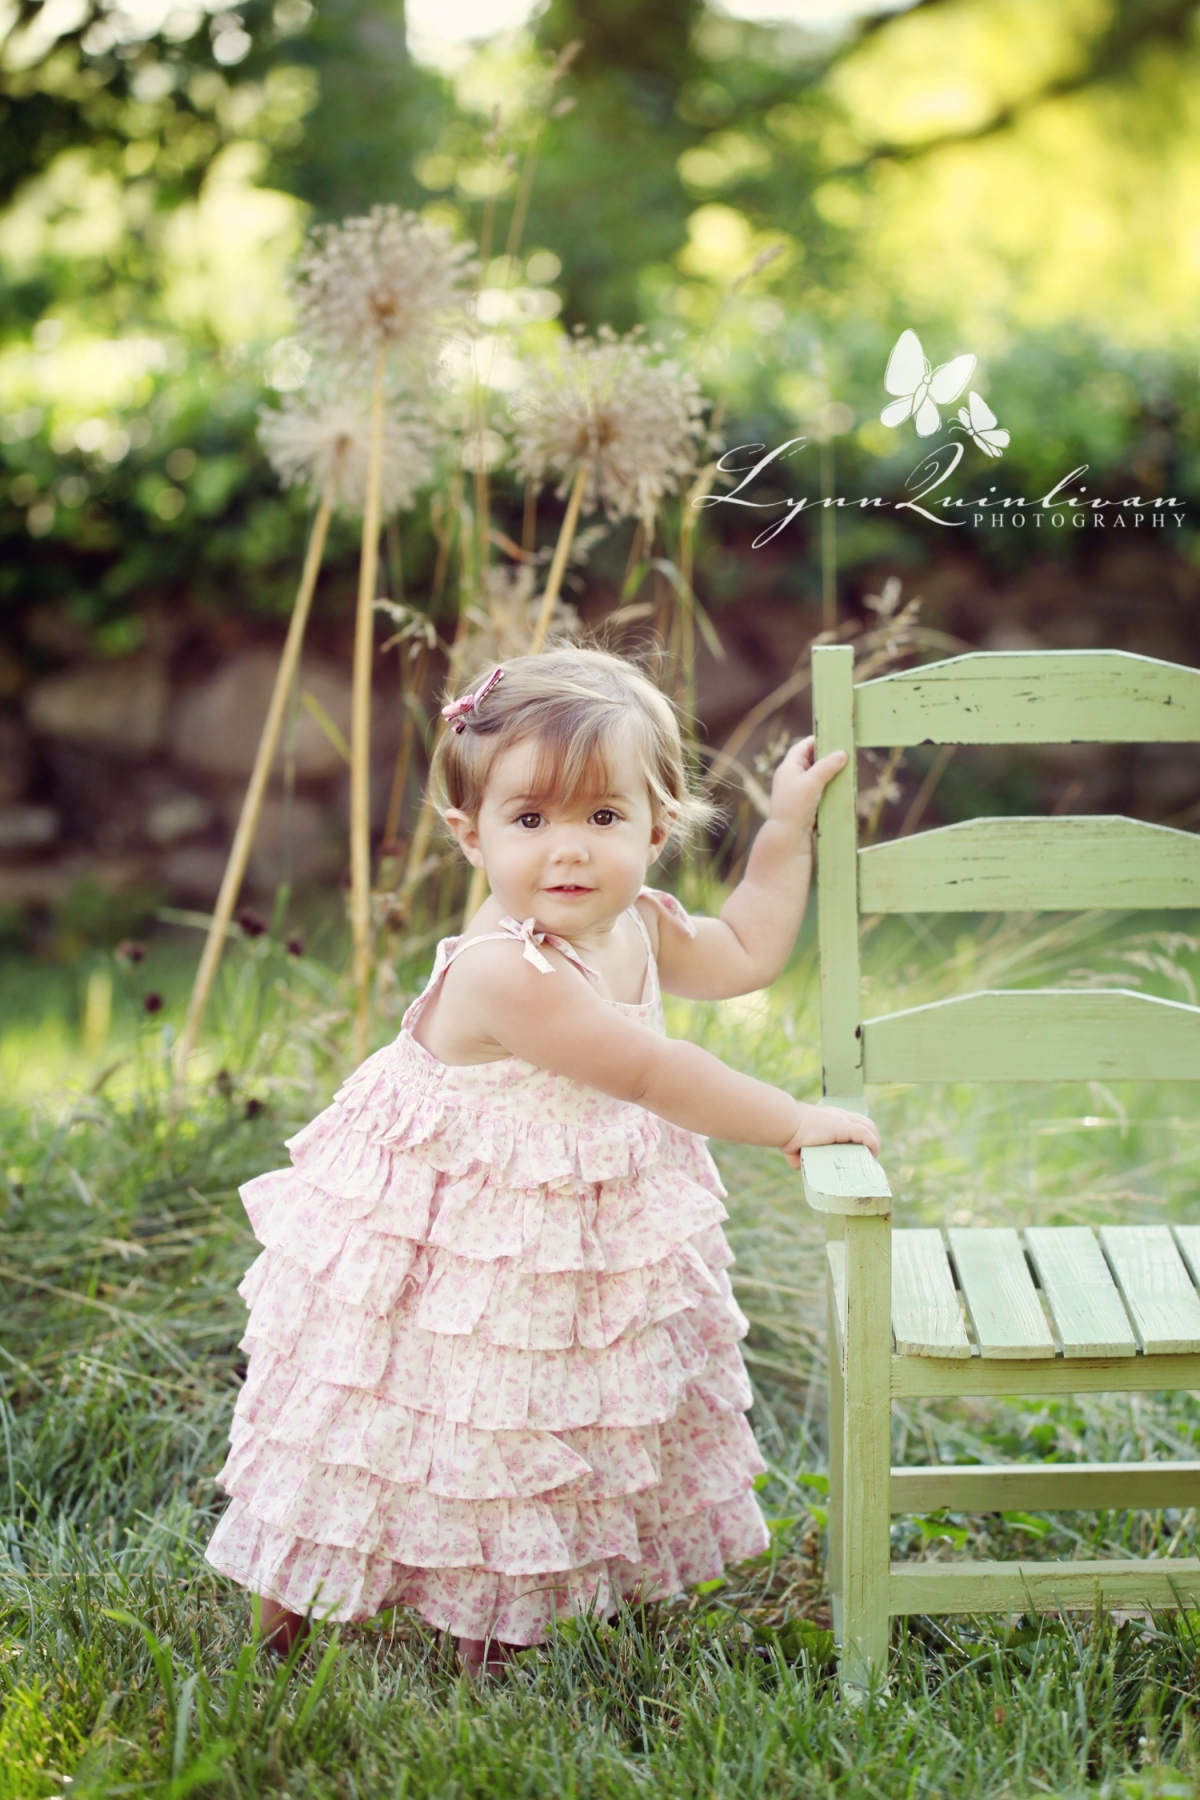 One year old baby girl leominster ma worcester massachusetts outdoor portrait photographer 001 - Photography ideas for girl ...